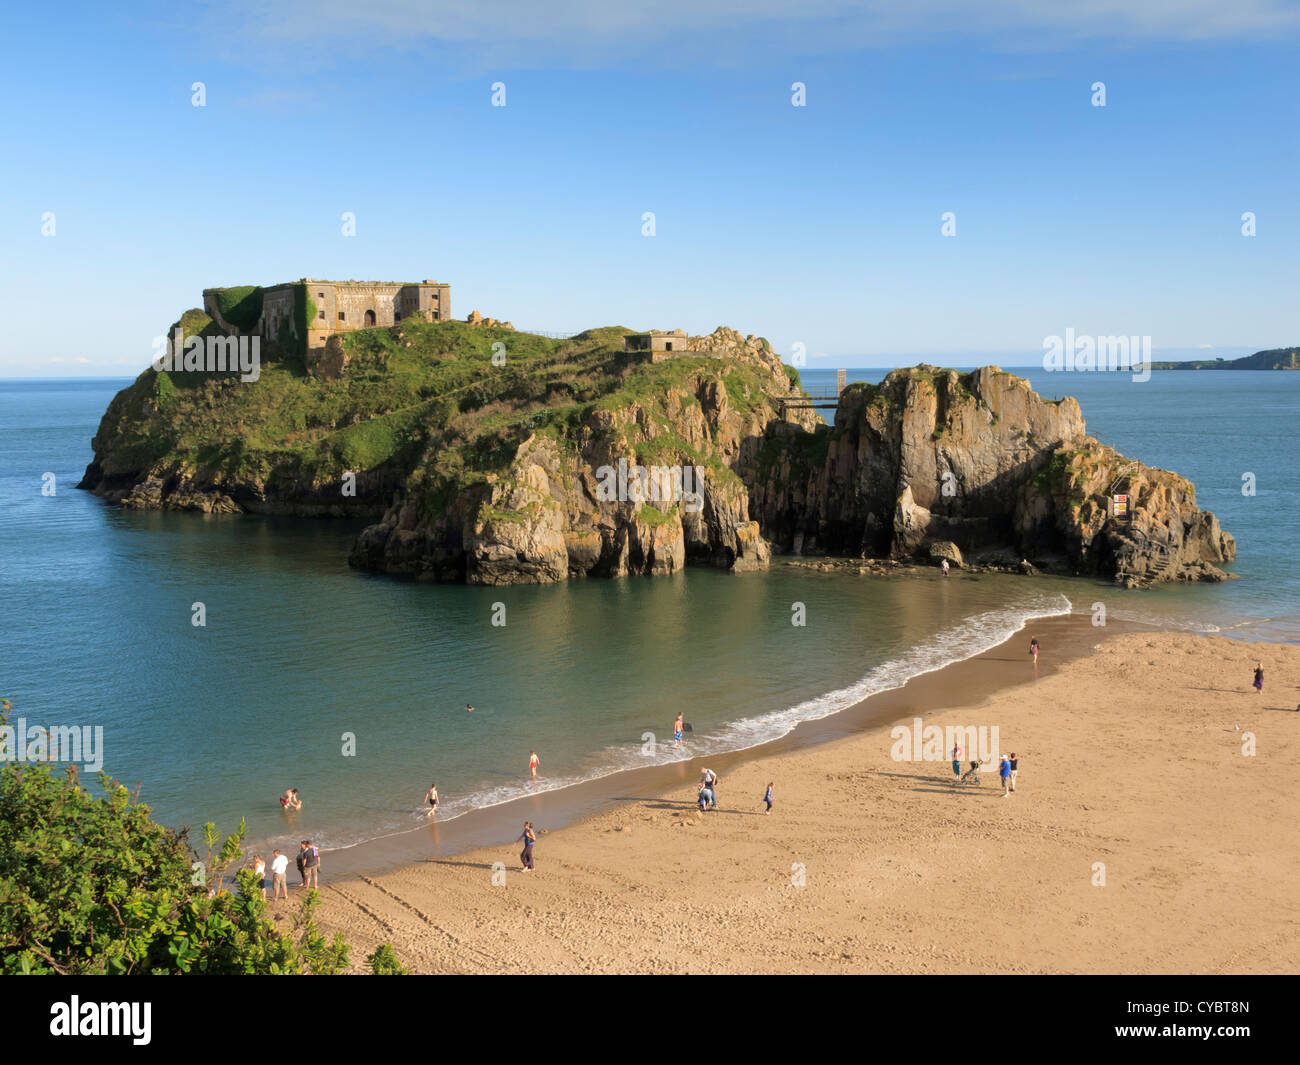 St Catherines Island Tenby Pembrokeshire Wales - Stock Image